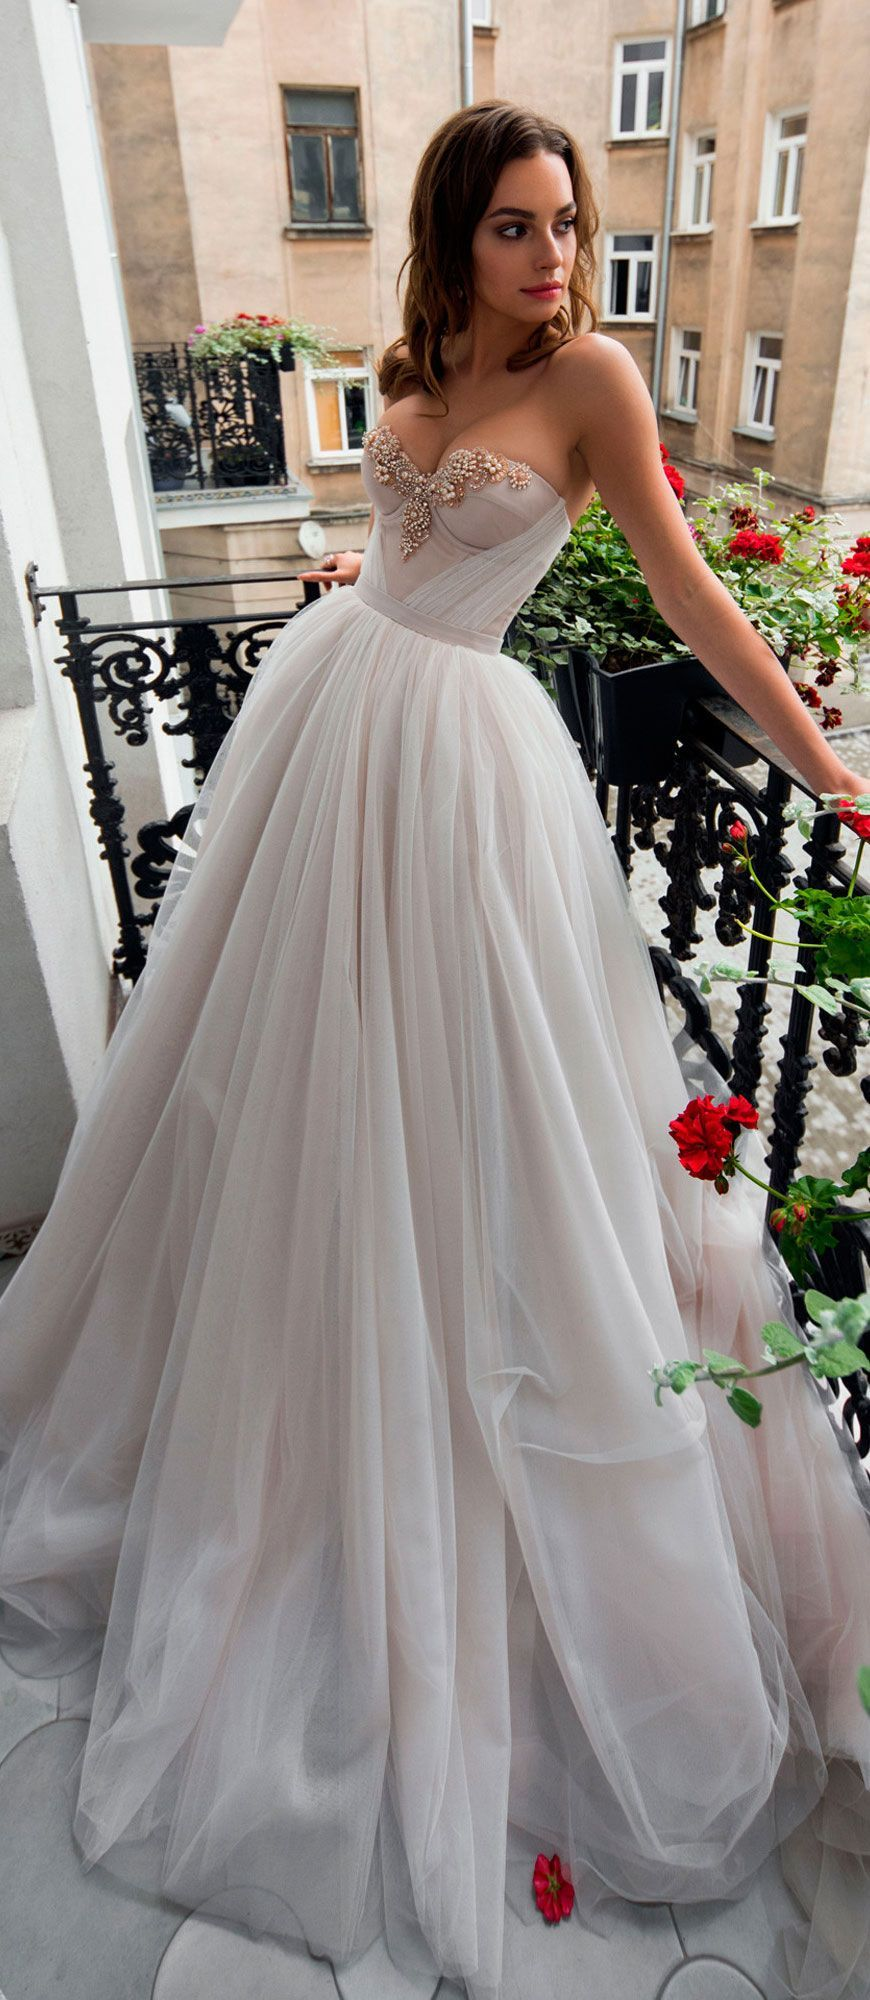 Nektaria wedding dress  BLAMMOBIAMO  Wedding Dresses  Ball gowns Neckline and Wedding